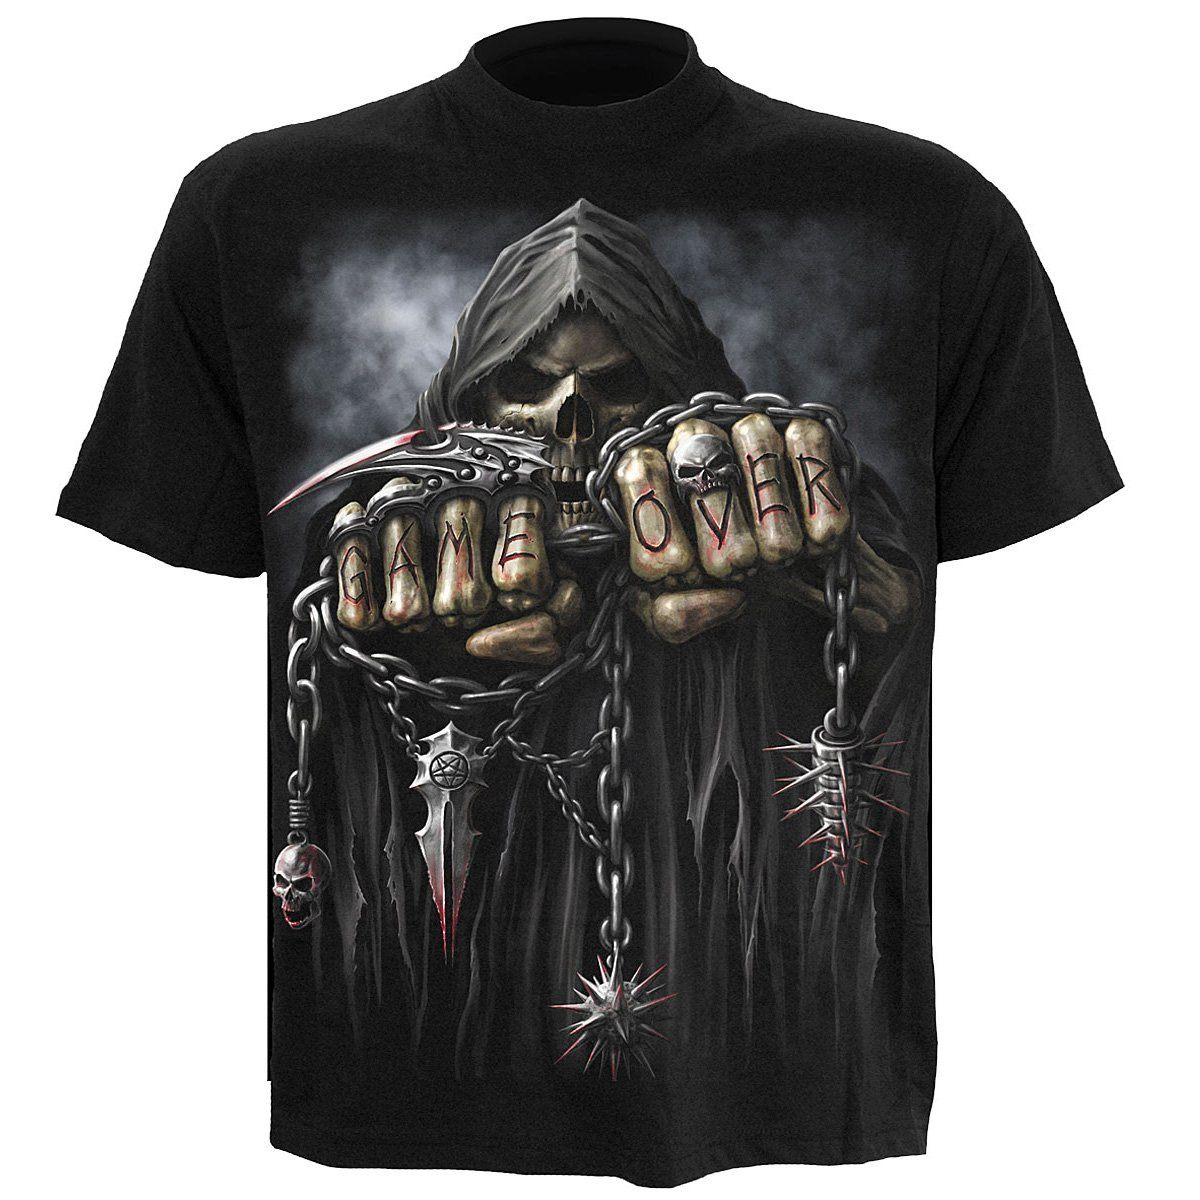 Game Over Grim Reaper Kid's Black T-Shirt